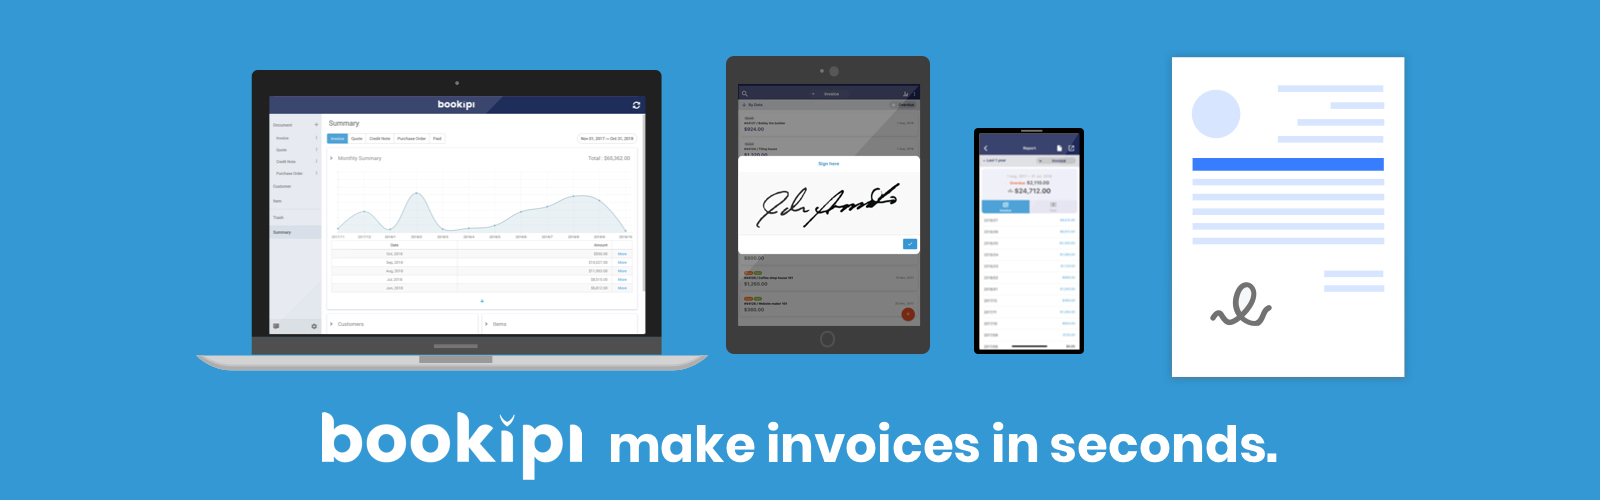 App Spotlight: Bookipi - Invoice Maker